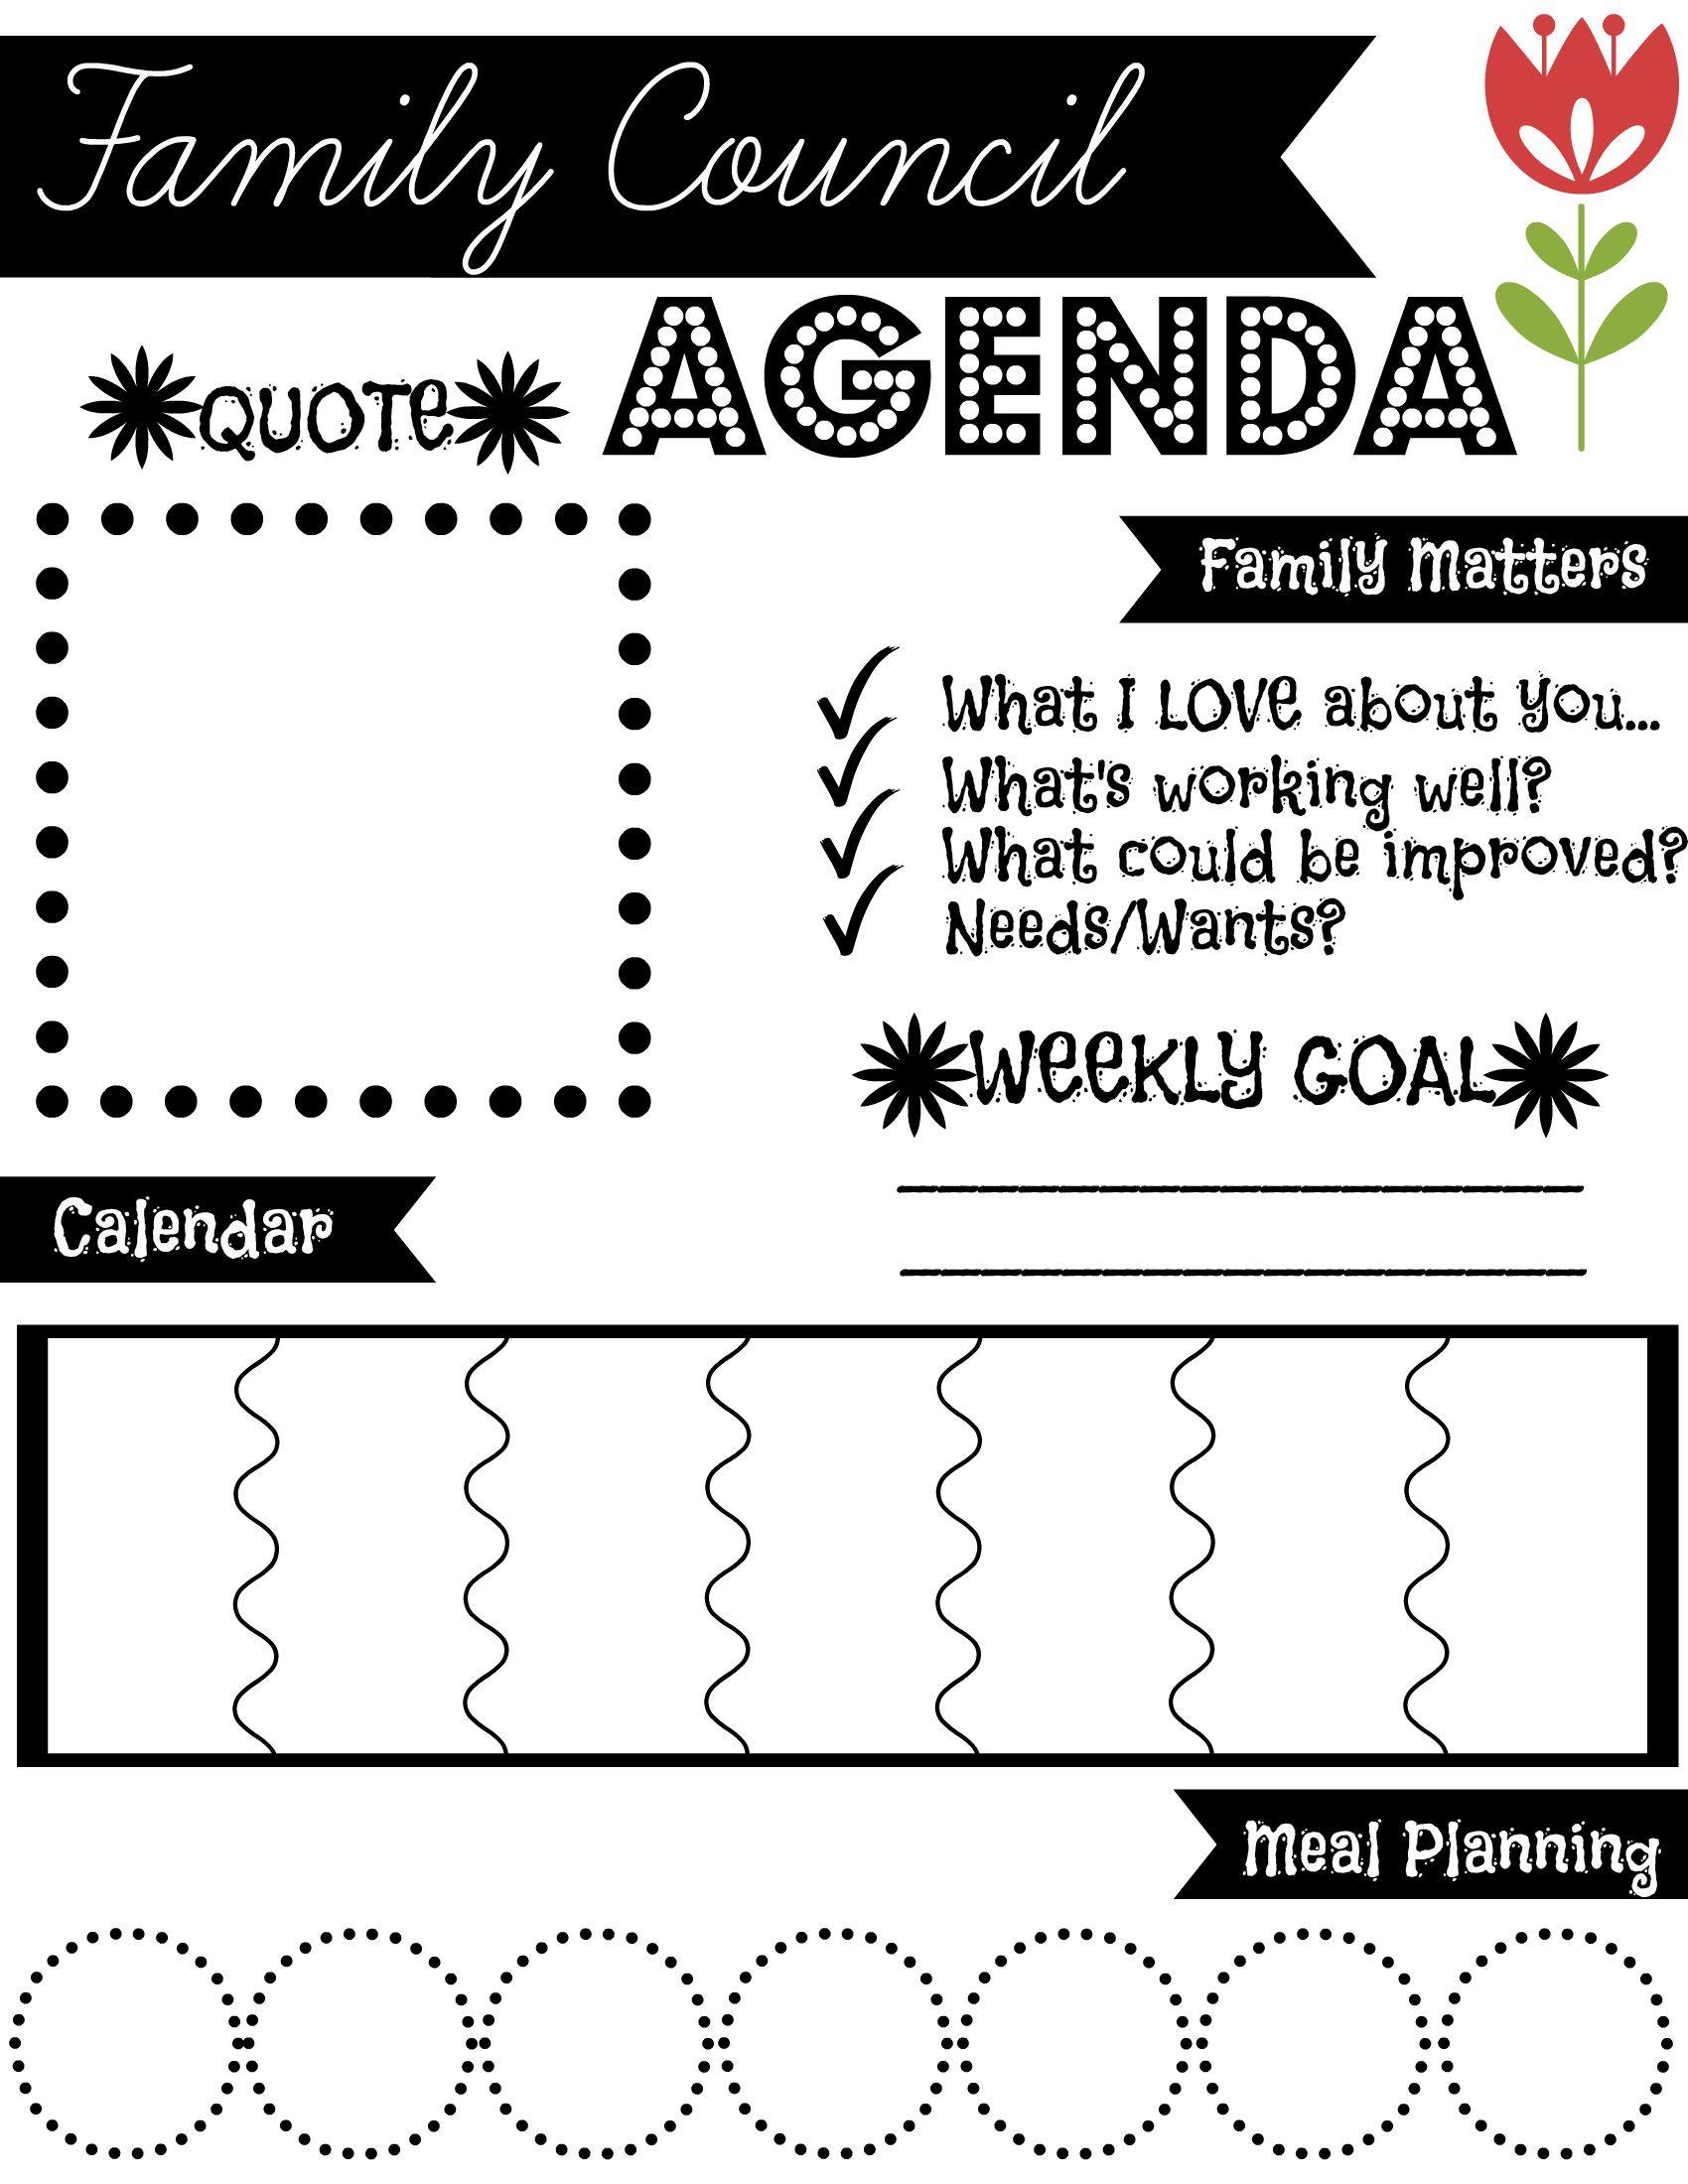 Family Council Agenda Find More Free Printables At